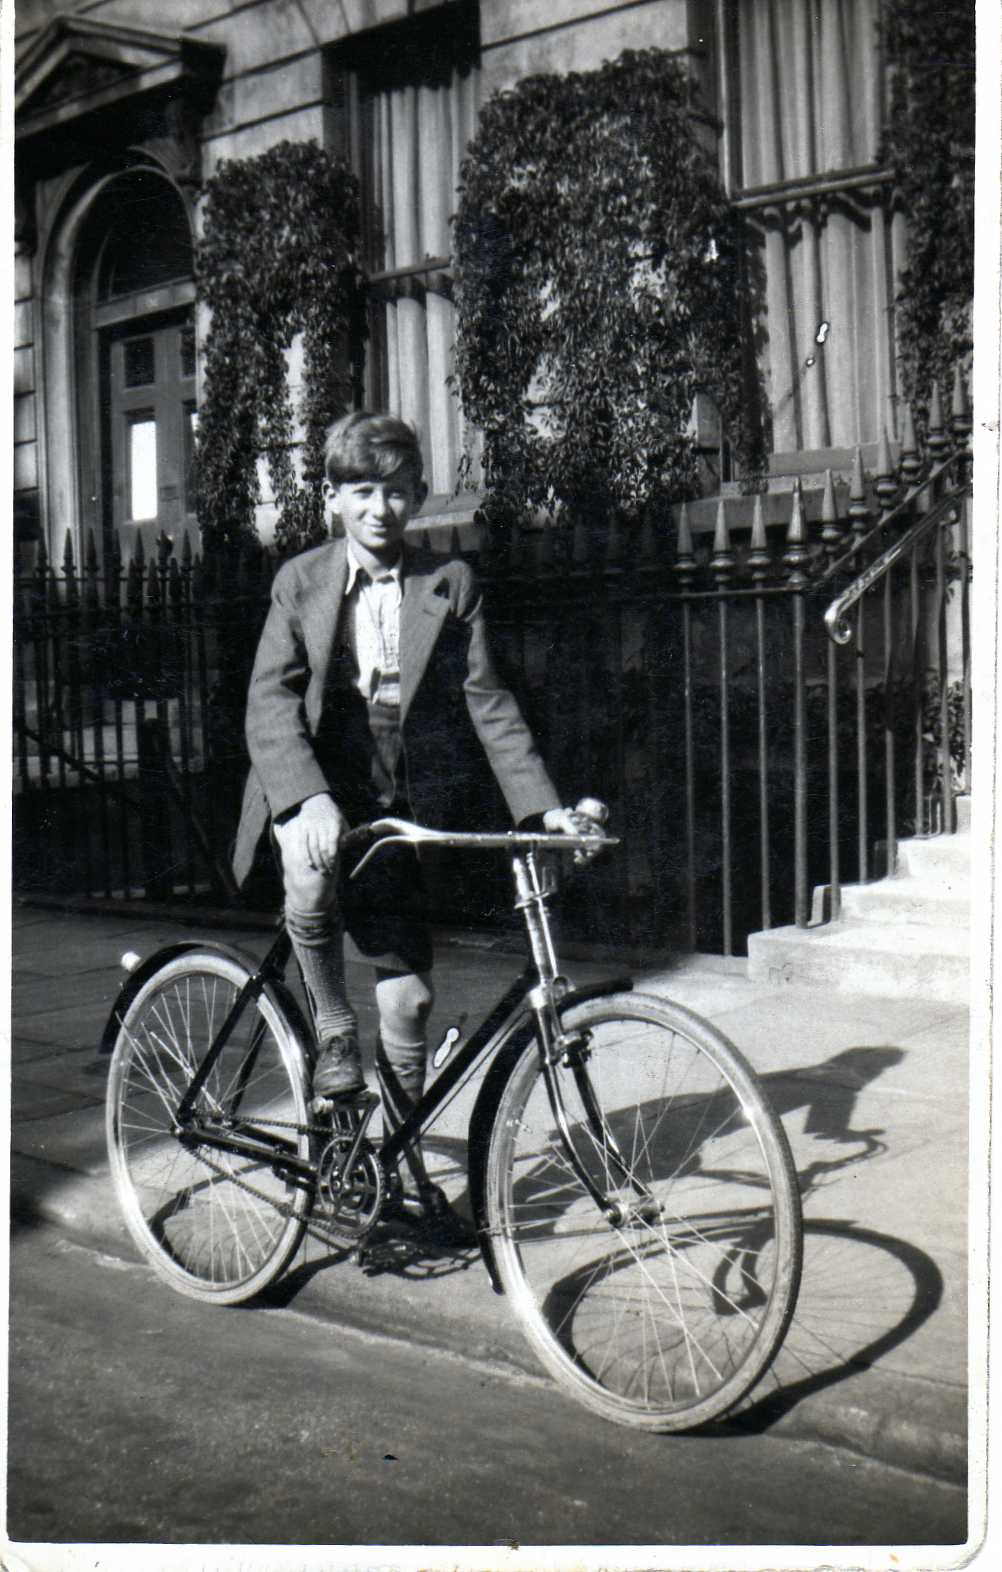 In the 1930s Sam Lomberg cycled all over London and the south east on his bicycle. Picture: courtesy of Sam Lomberg